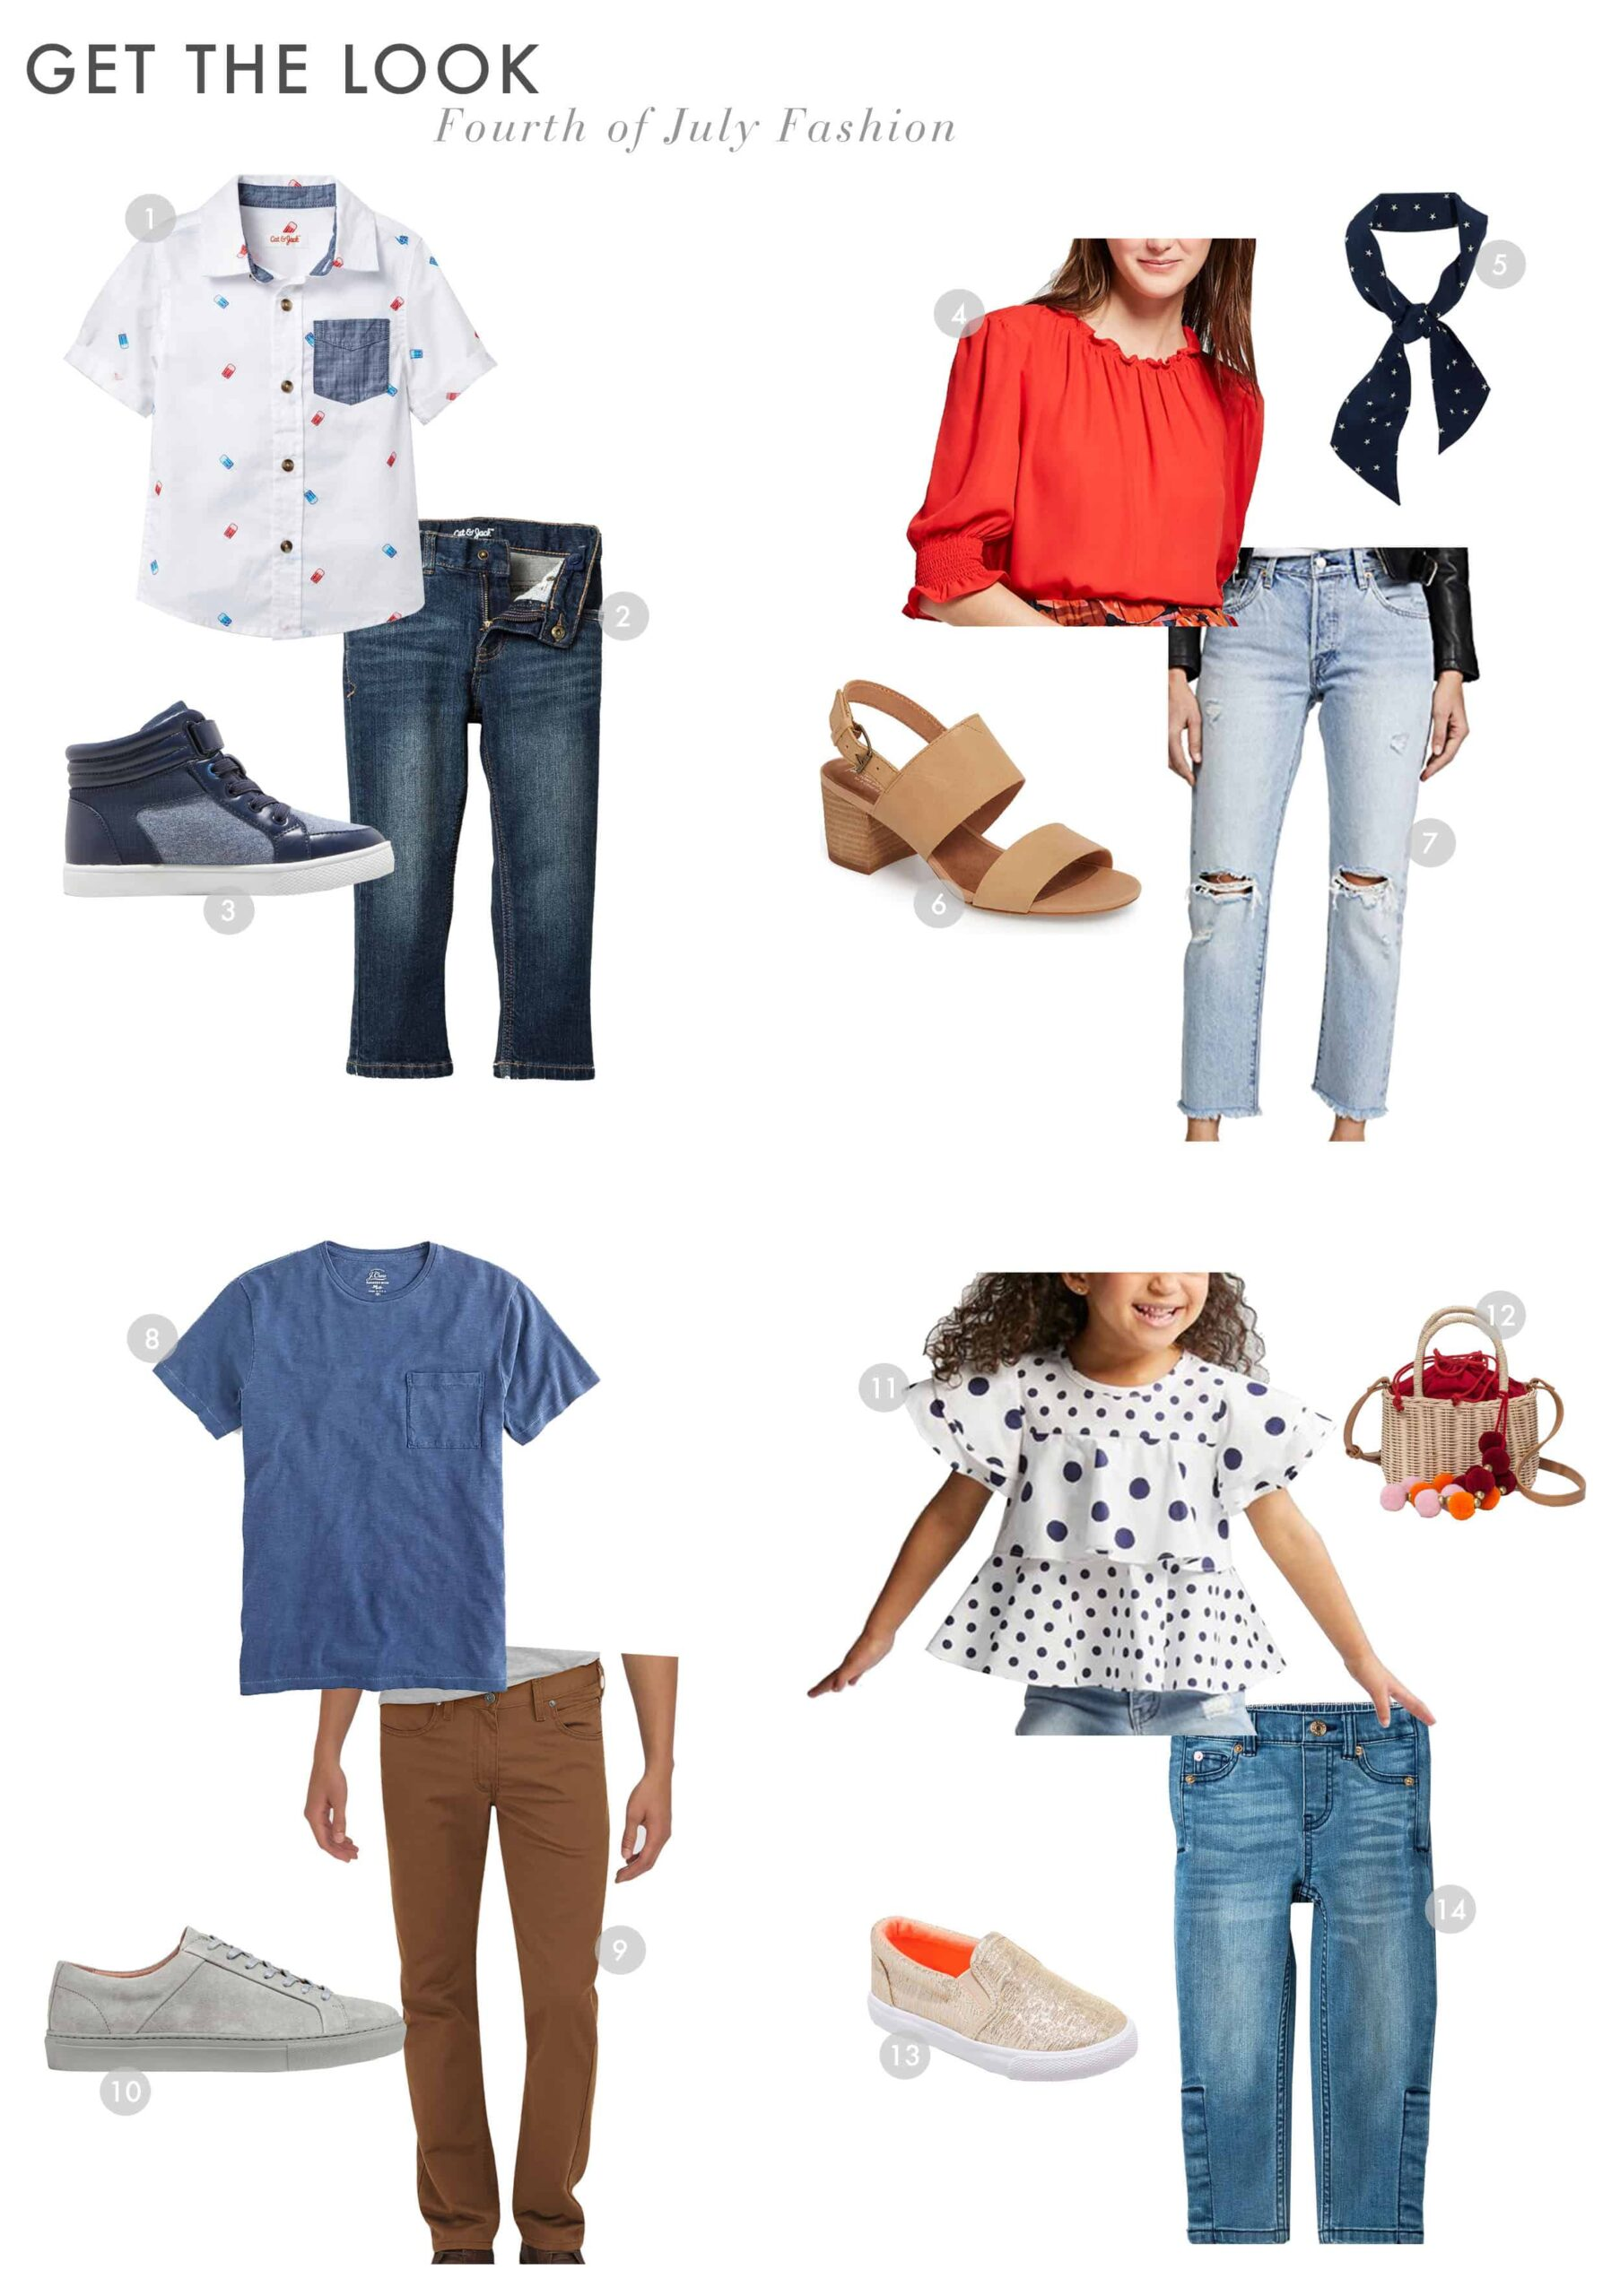 Emily Henderson Rachael Ray Fourth Of July Kids Get The Look Fashion 1